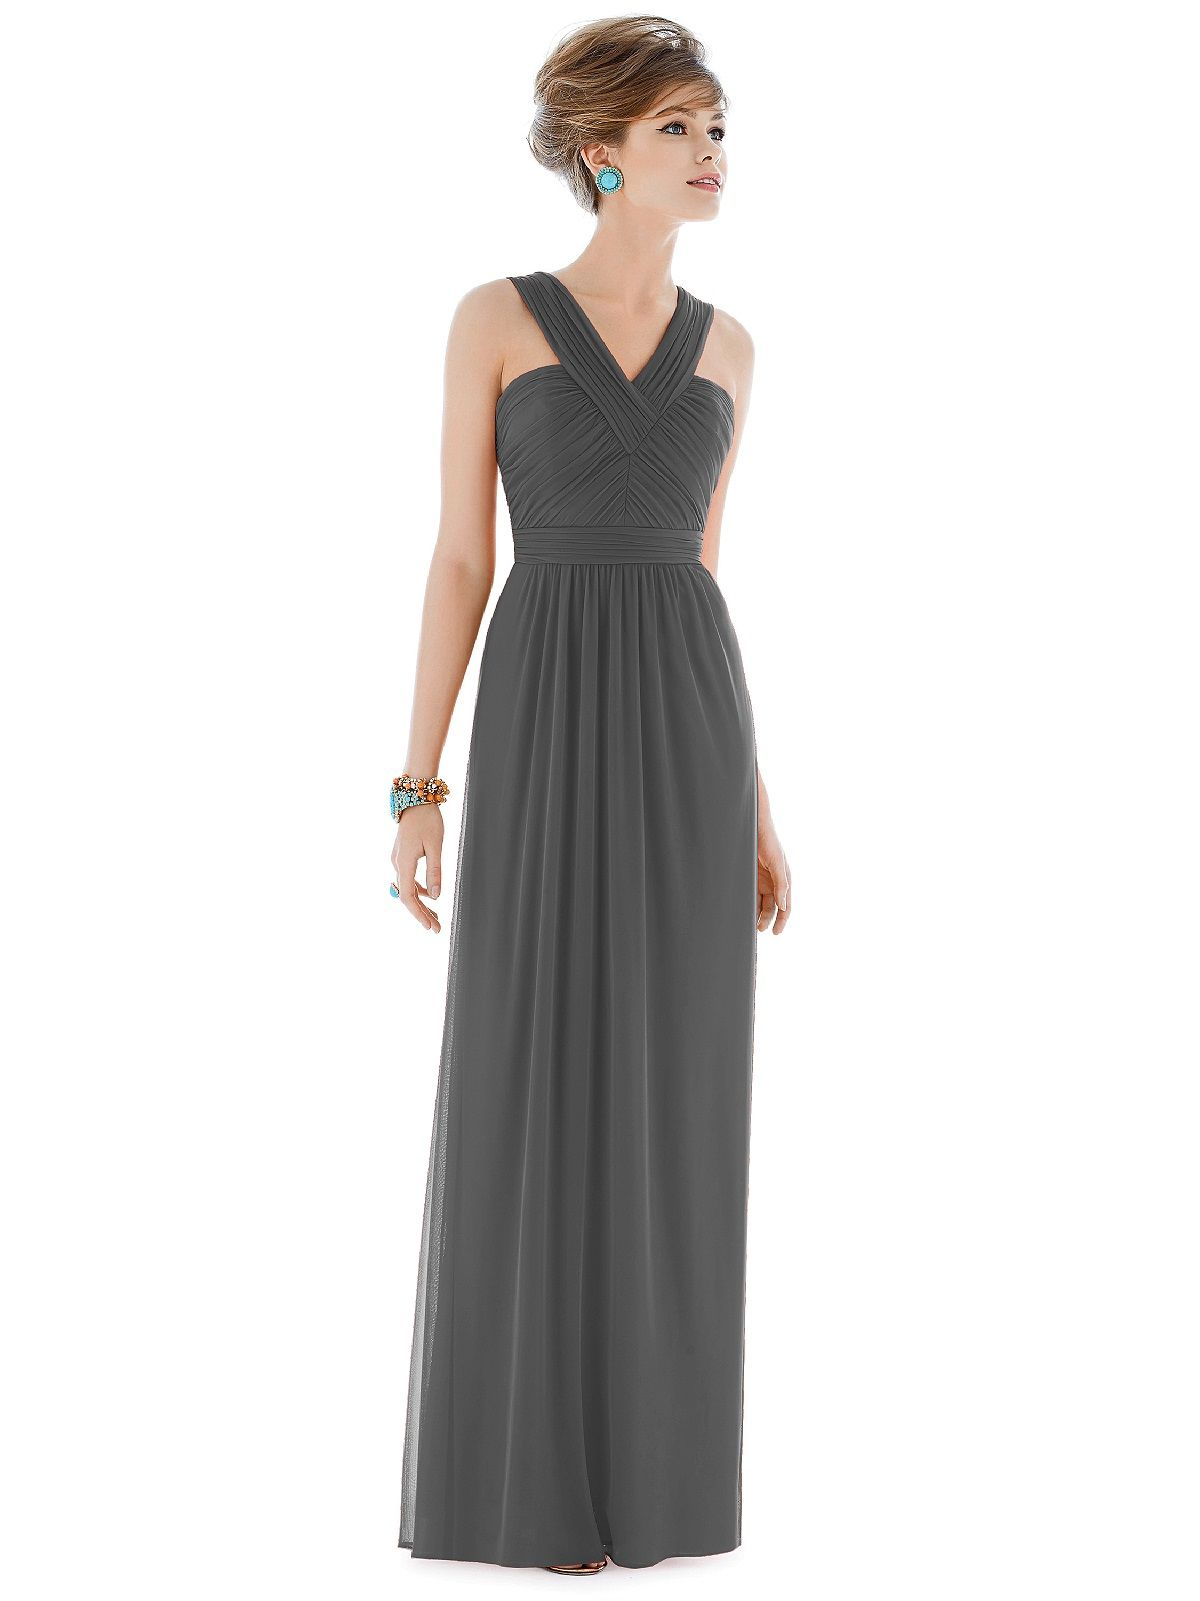 Rental alfred sung d678 bridesmaid dress in charcoal in chiffon rental alfred sung d678 bridesmaid dress in charcoal in chiffon ombrellifo Images